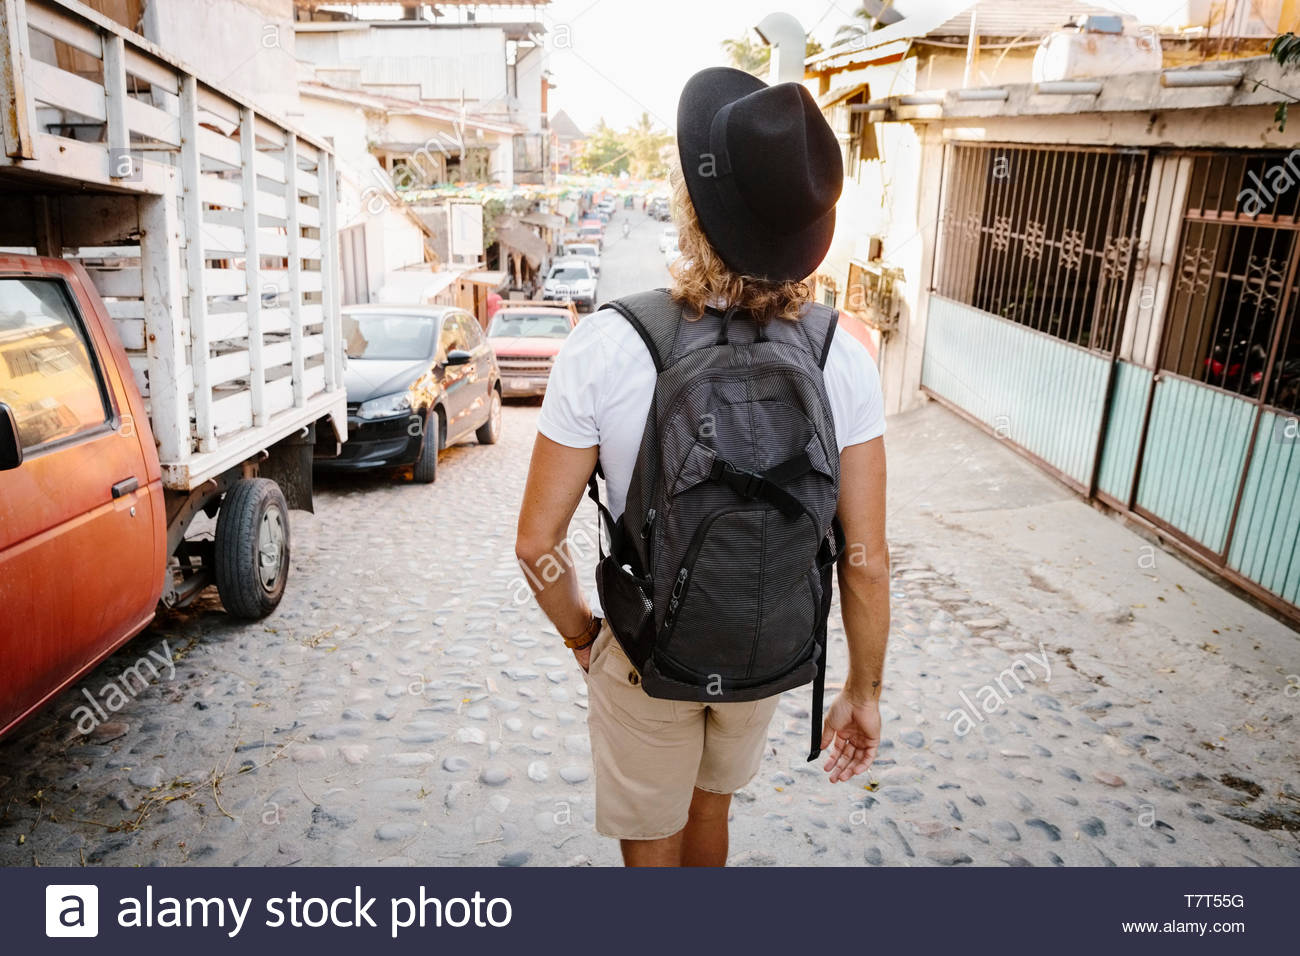 Young male tourist with backpack walking on cobblestone street, Mexico - Stock Image